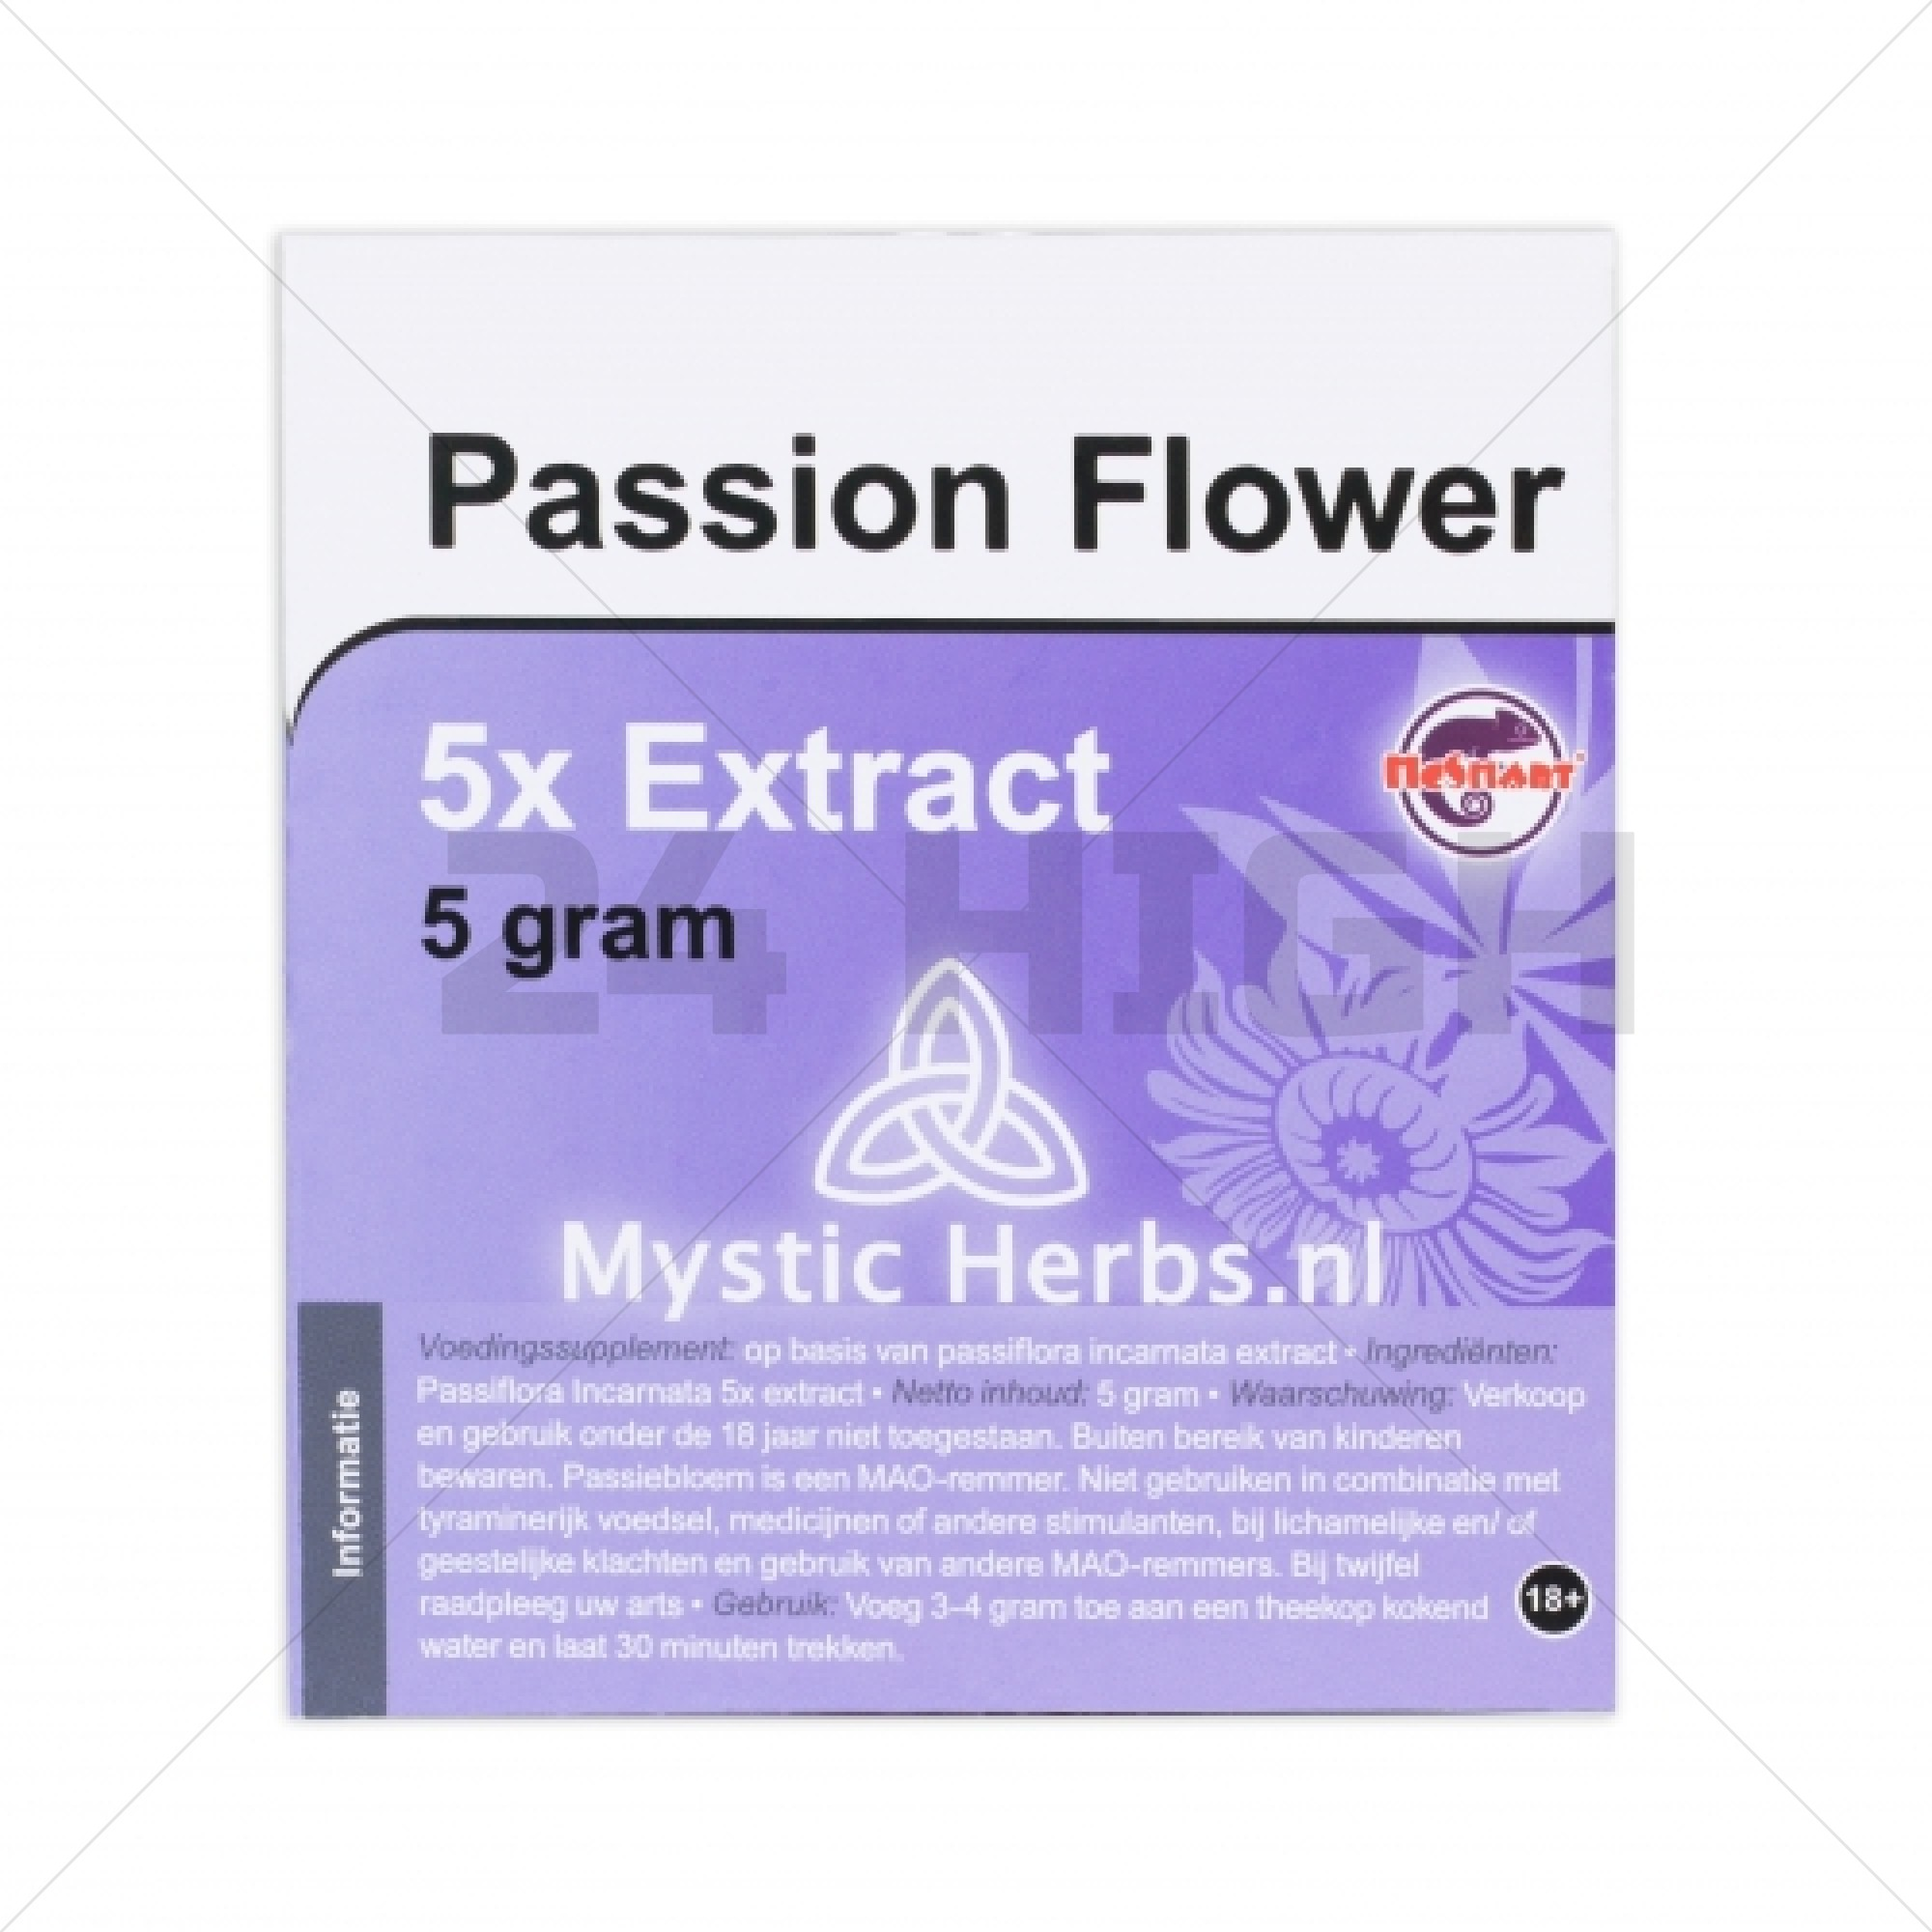 Passion Flower - 5X Extract